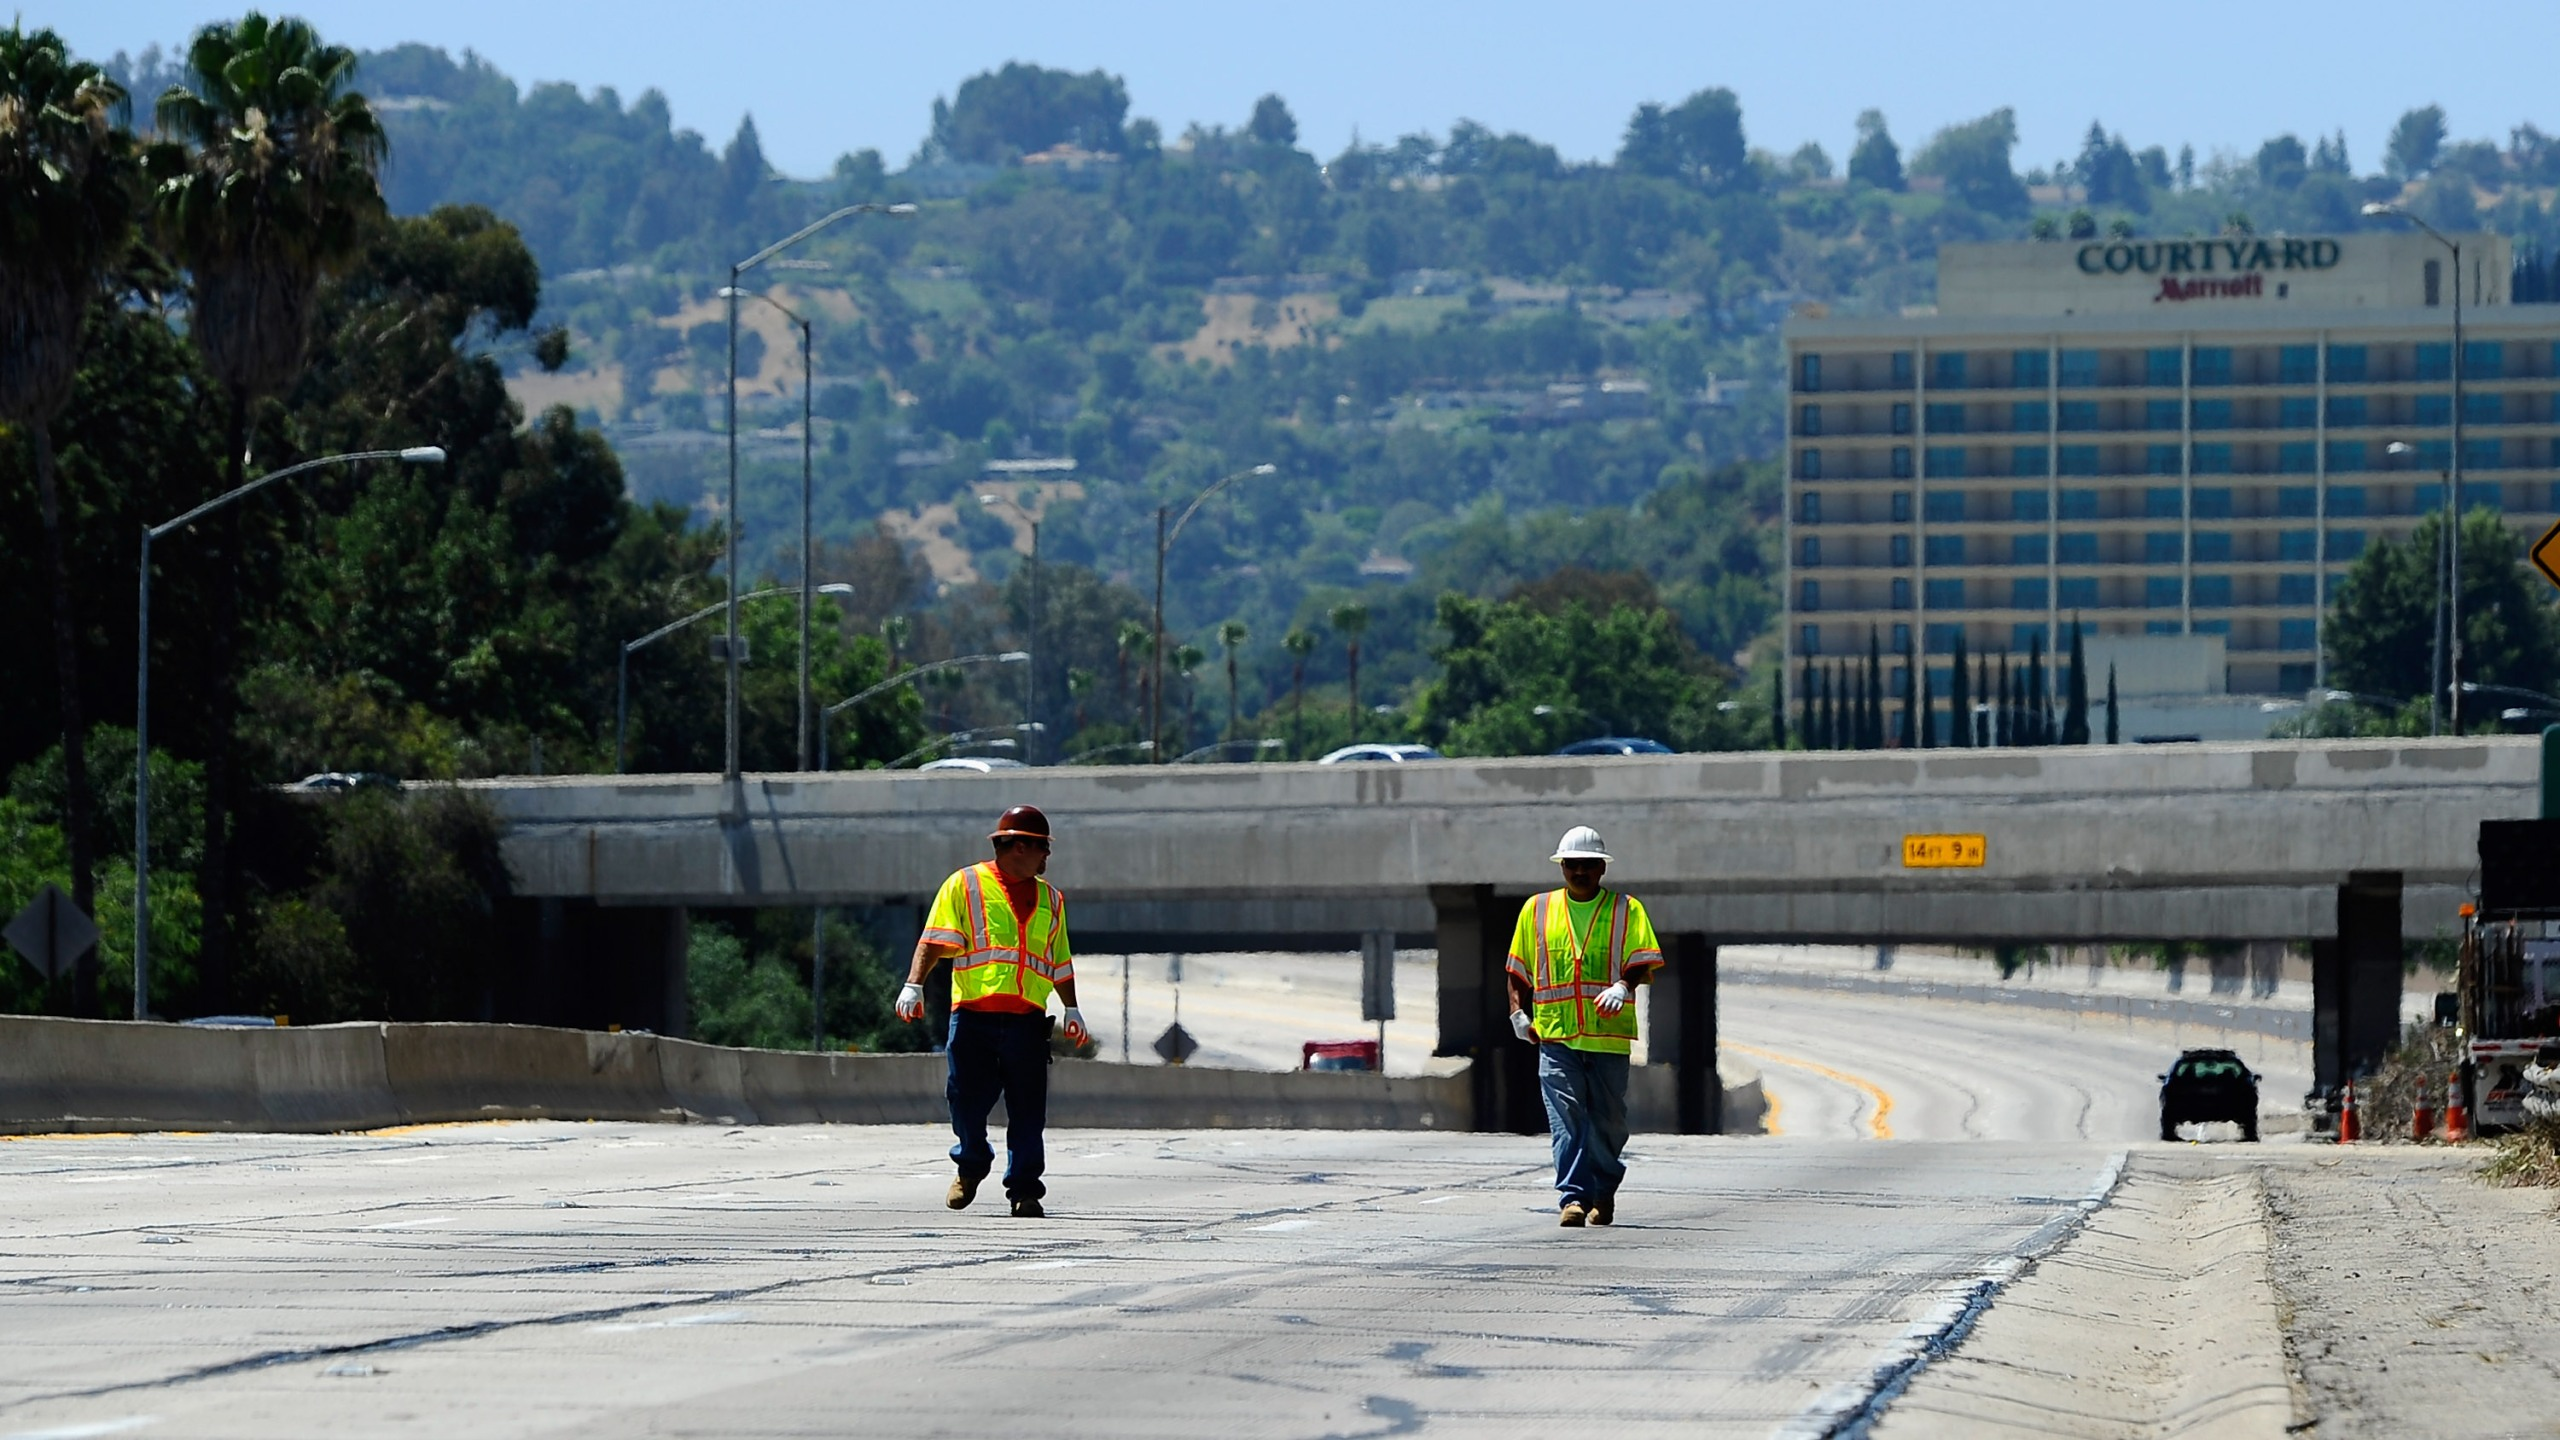 Construction workers walk on the empty southbound lanes of the 405 Freeway as they prepare to re-open a 10-mile stretch of the freeway that was closed for construction on July 17, 2011, in Los Angeles. (Credit: Kevork Djansezian/Getty Images)